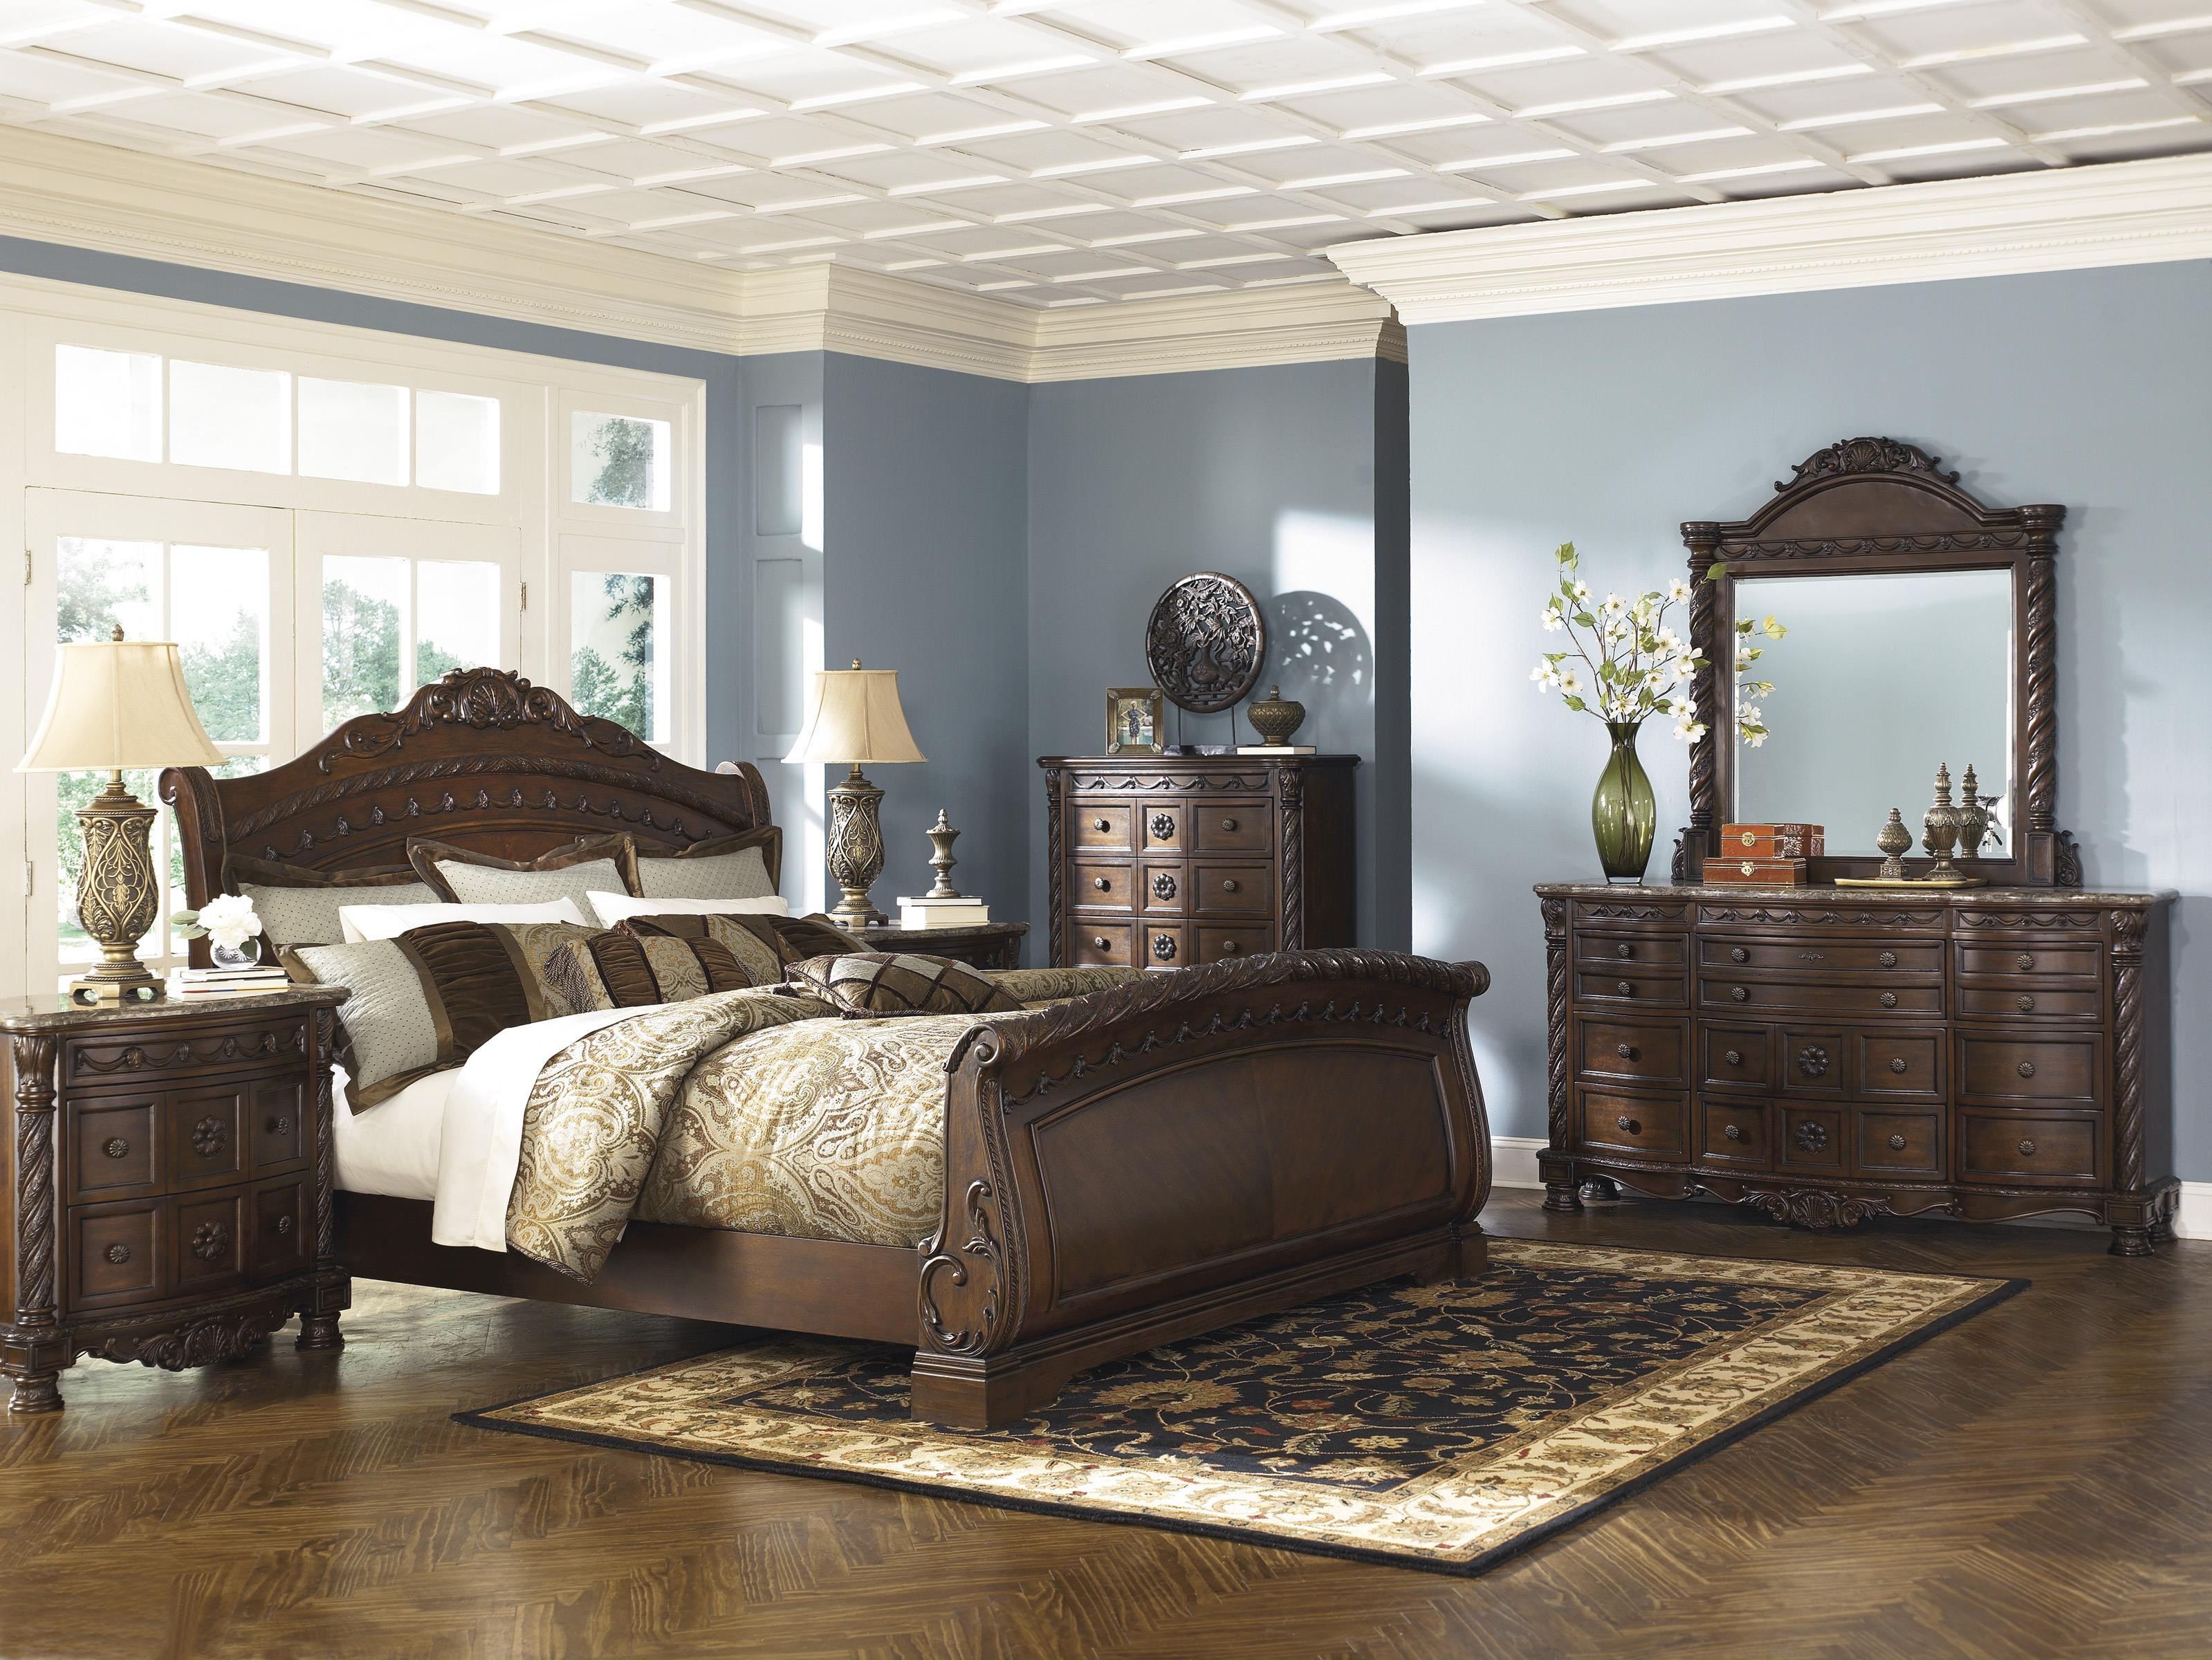 Millennium North Shore Queen Bedroom Group - Item Number: B553 Q Bedroom Group 2